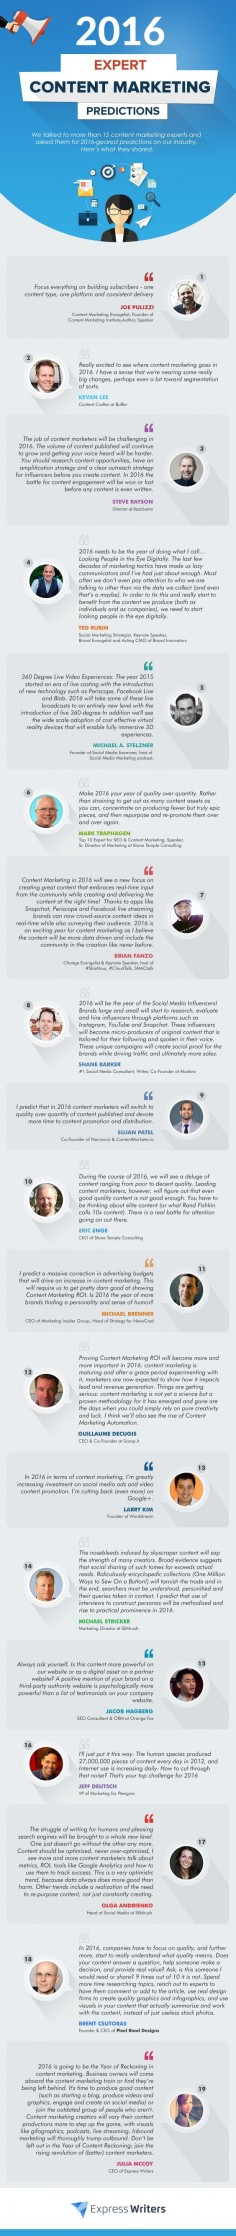 The Future of Content Marketing: 19 Experts Share Their 2016 Predictions - infographic